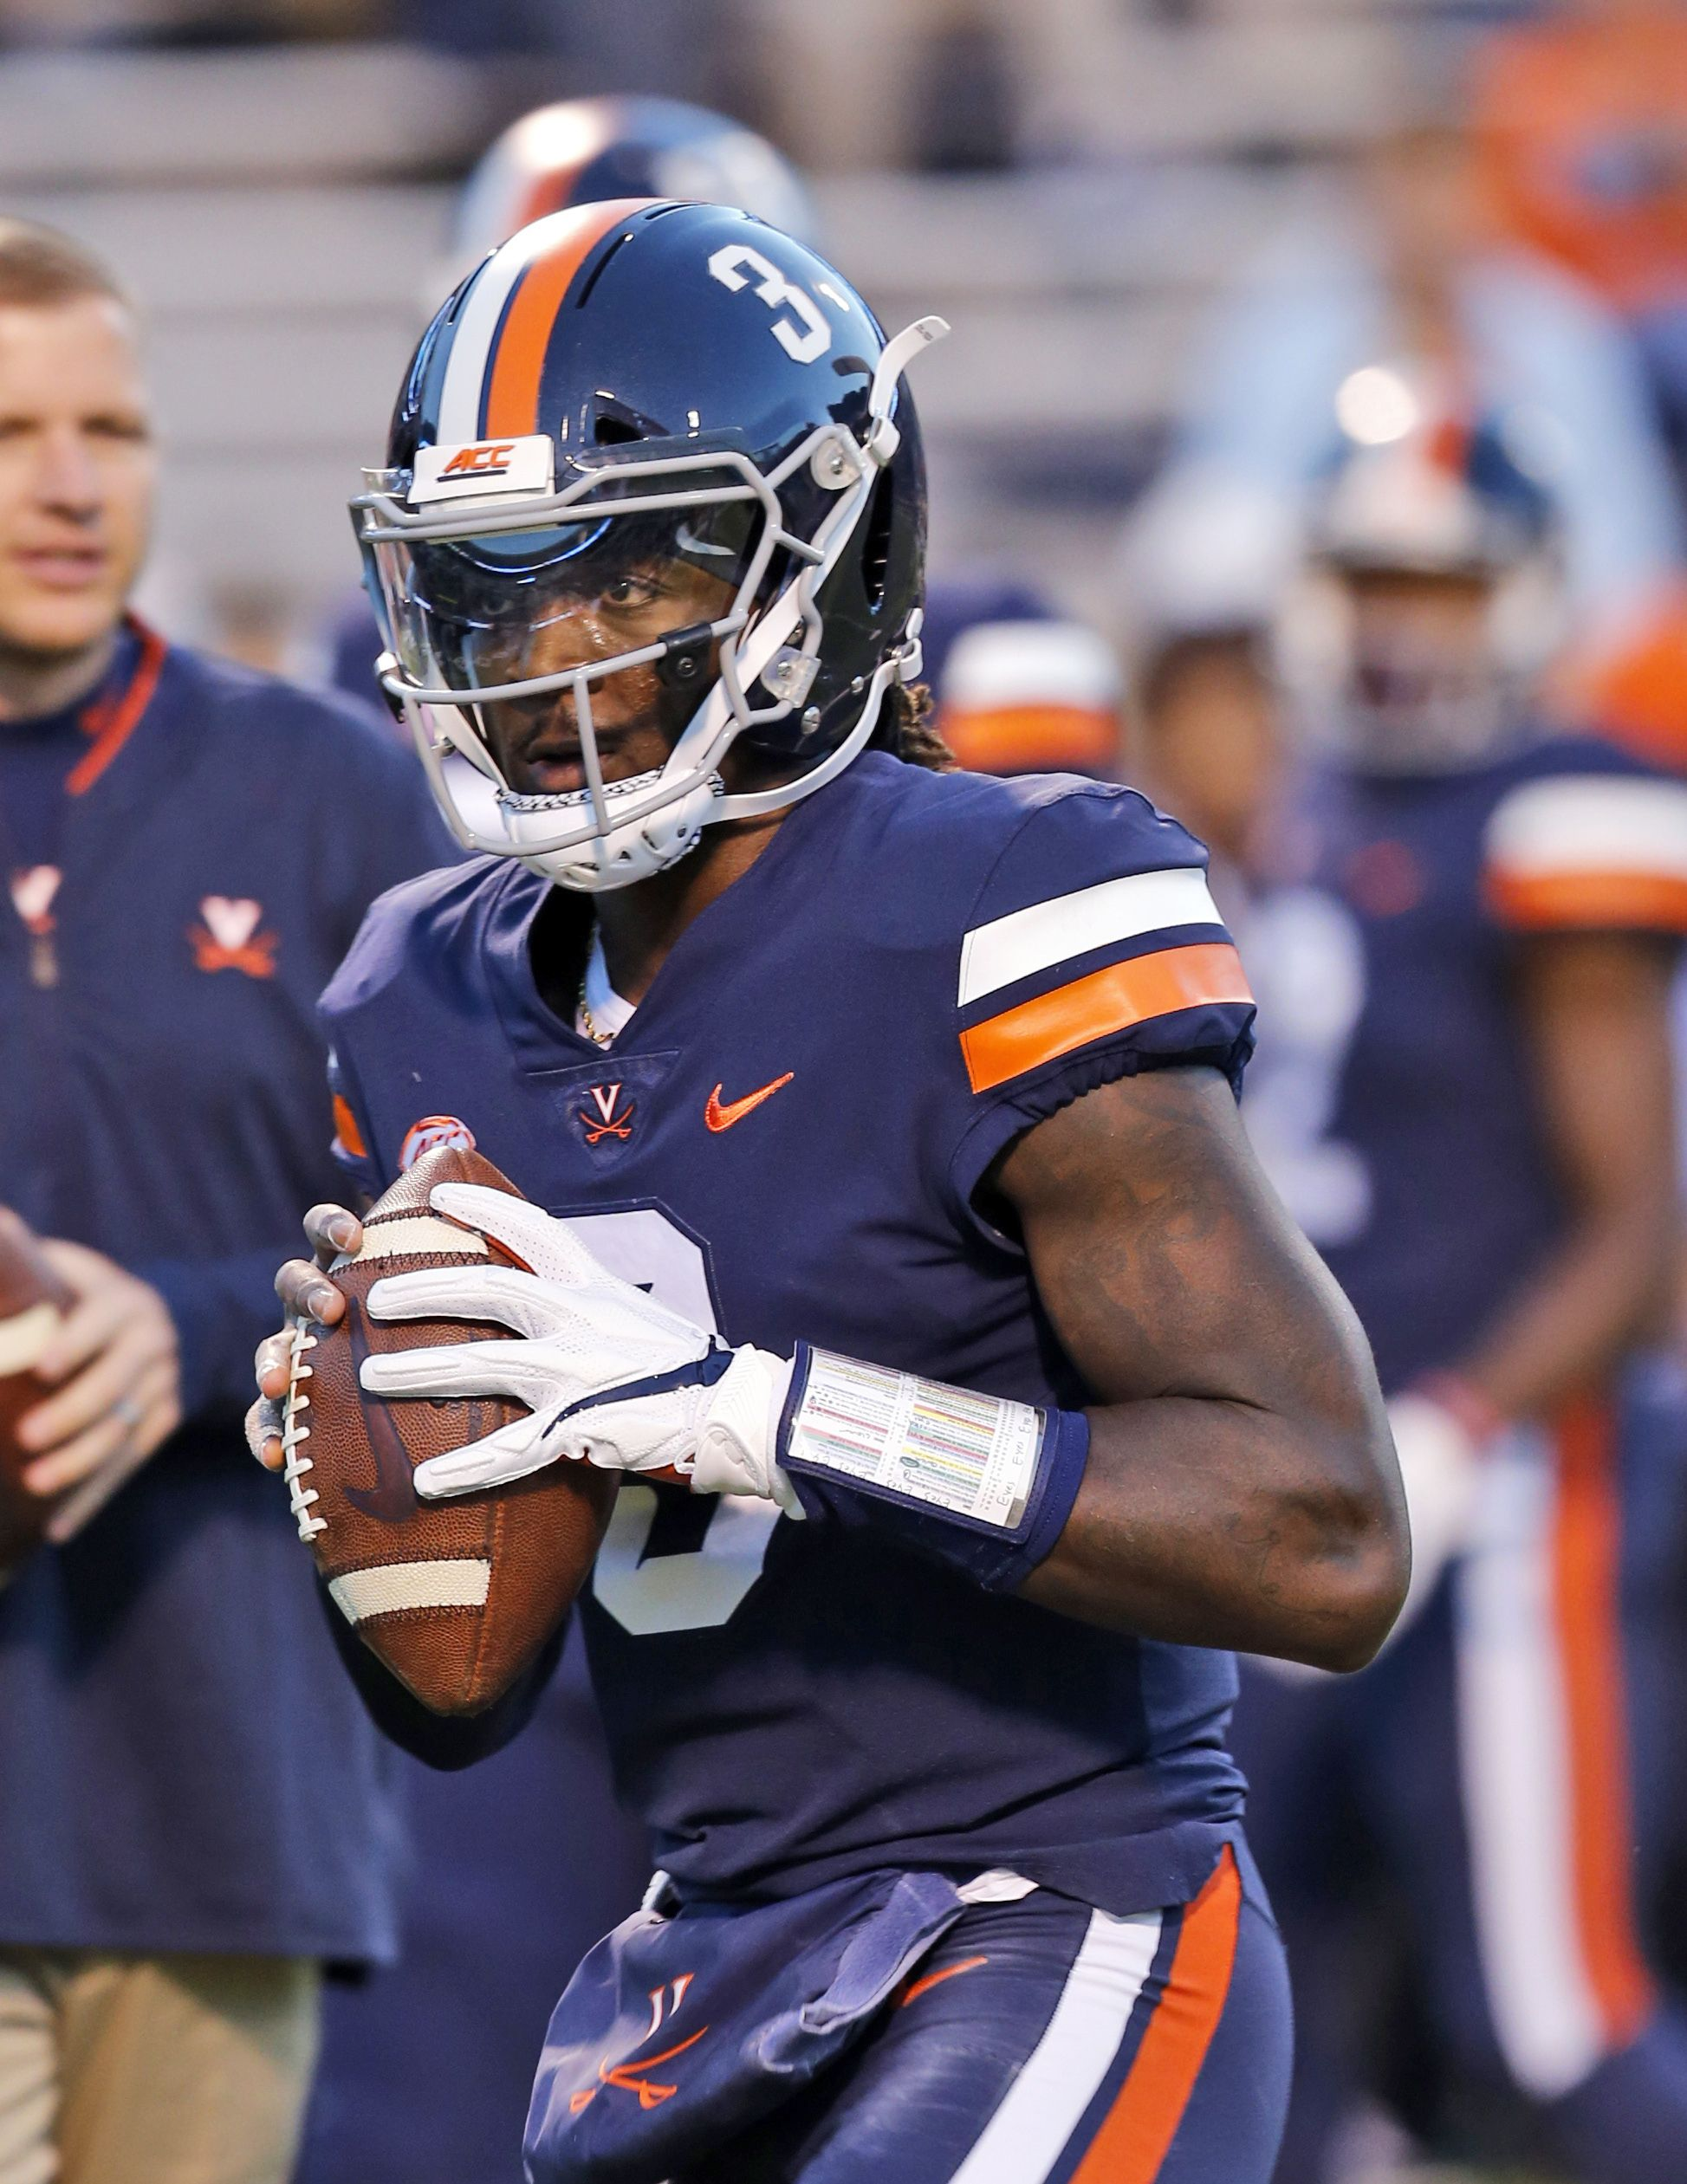 Virginia Football Enters 2019 Schedule With Hopes For